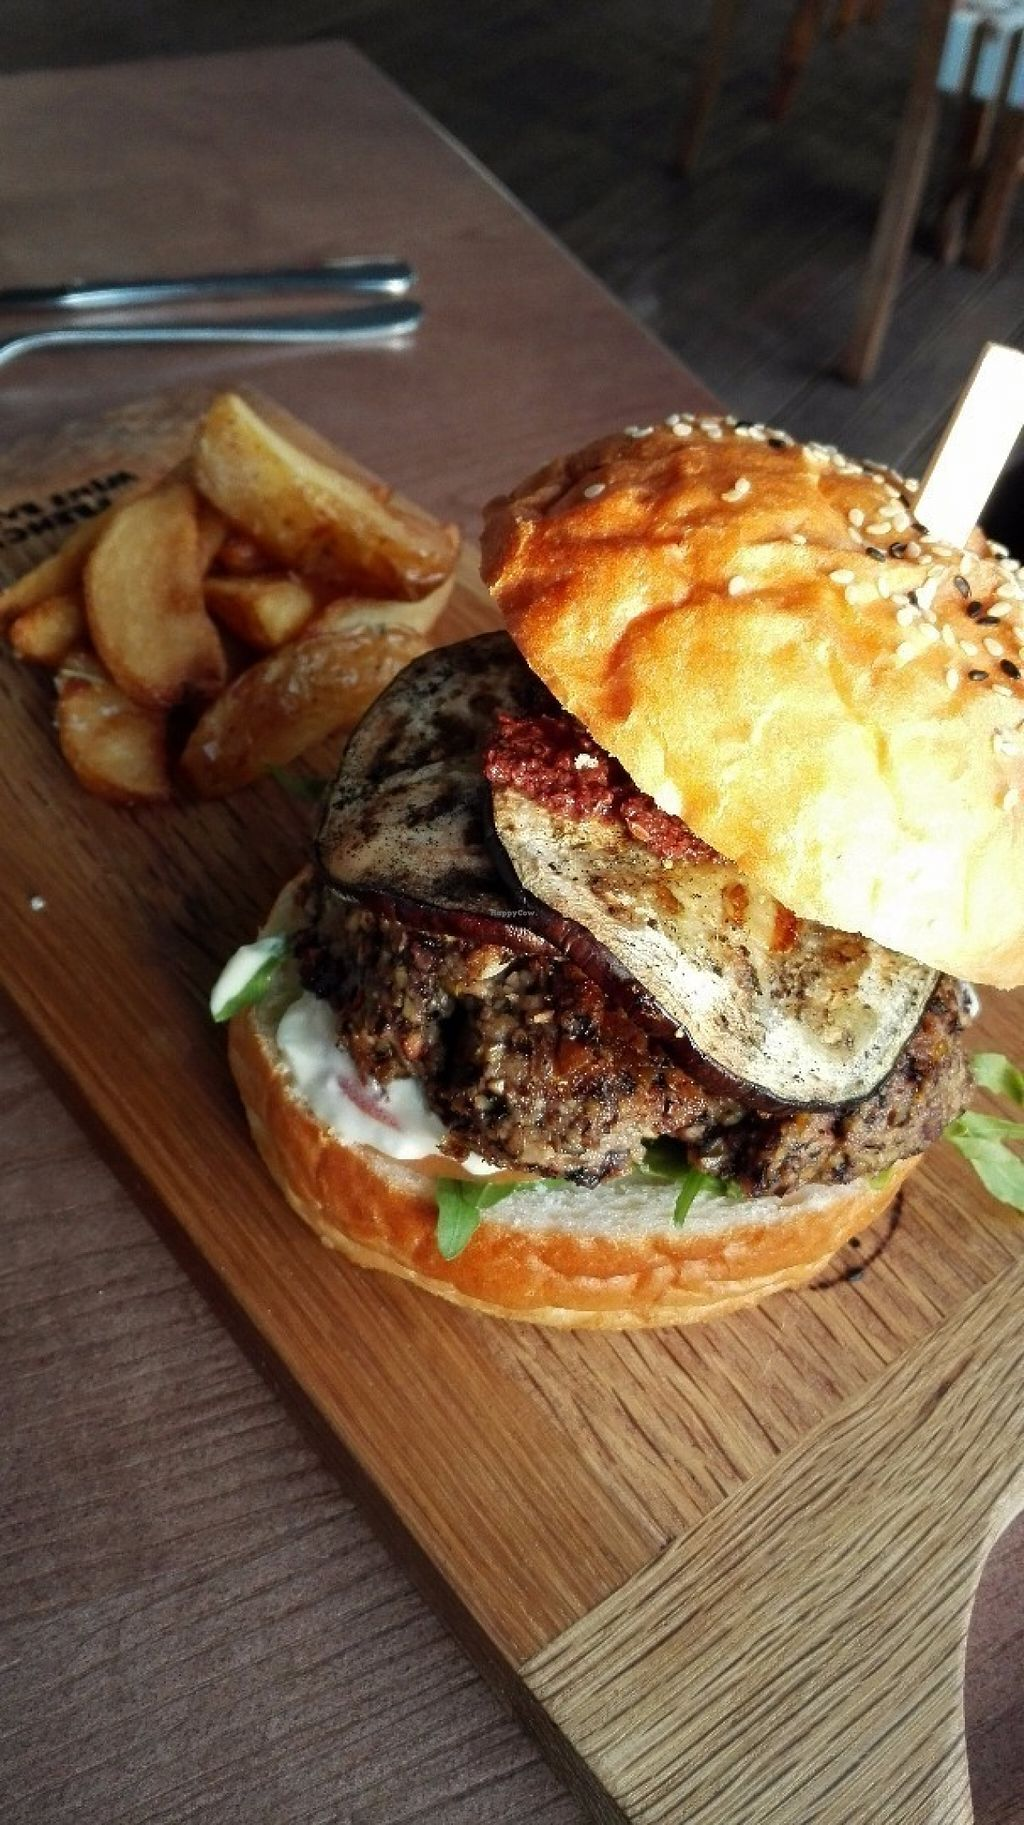 """Photo of CLOSED: Nomad Restaurant  by <a href=""""/members/profile/NatashaV"""">NatashaV</a> <br/>Vegan bean burger with grilled aubergine, Moroccan olive pesto and vegan mozzarella <br/> July 28, 2016  - <a href='/contact/abuse/image/69554/162848'>Report</a>"""